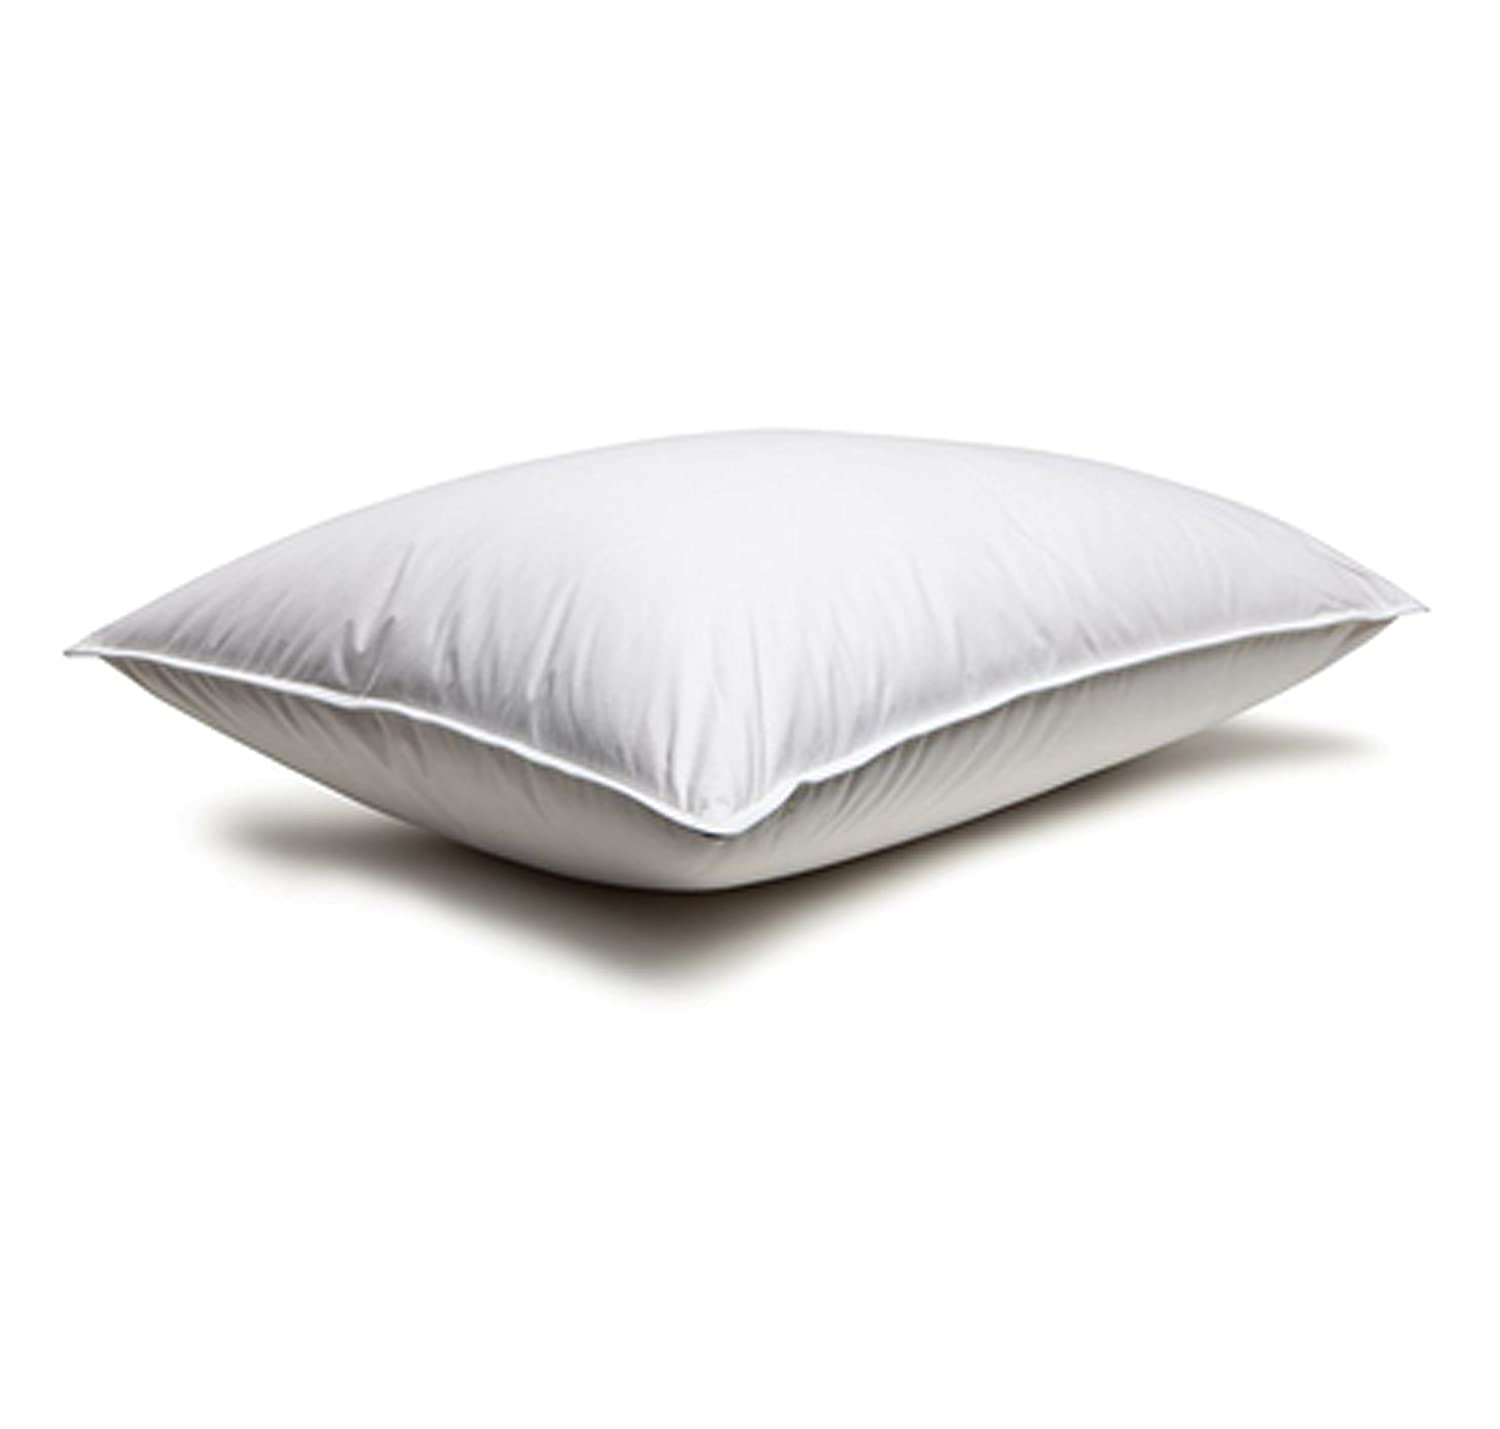 form cushion by cotton down feather gallery pillows amazon millihome amazoncom pillow blanket